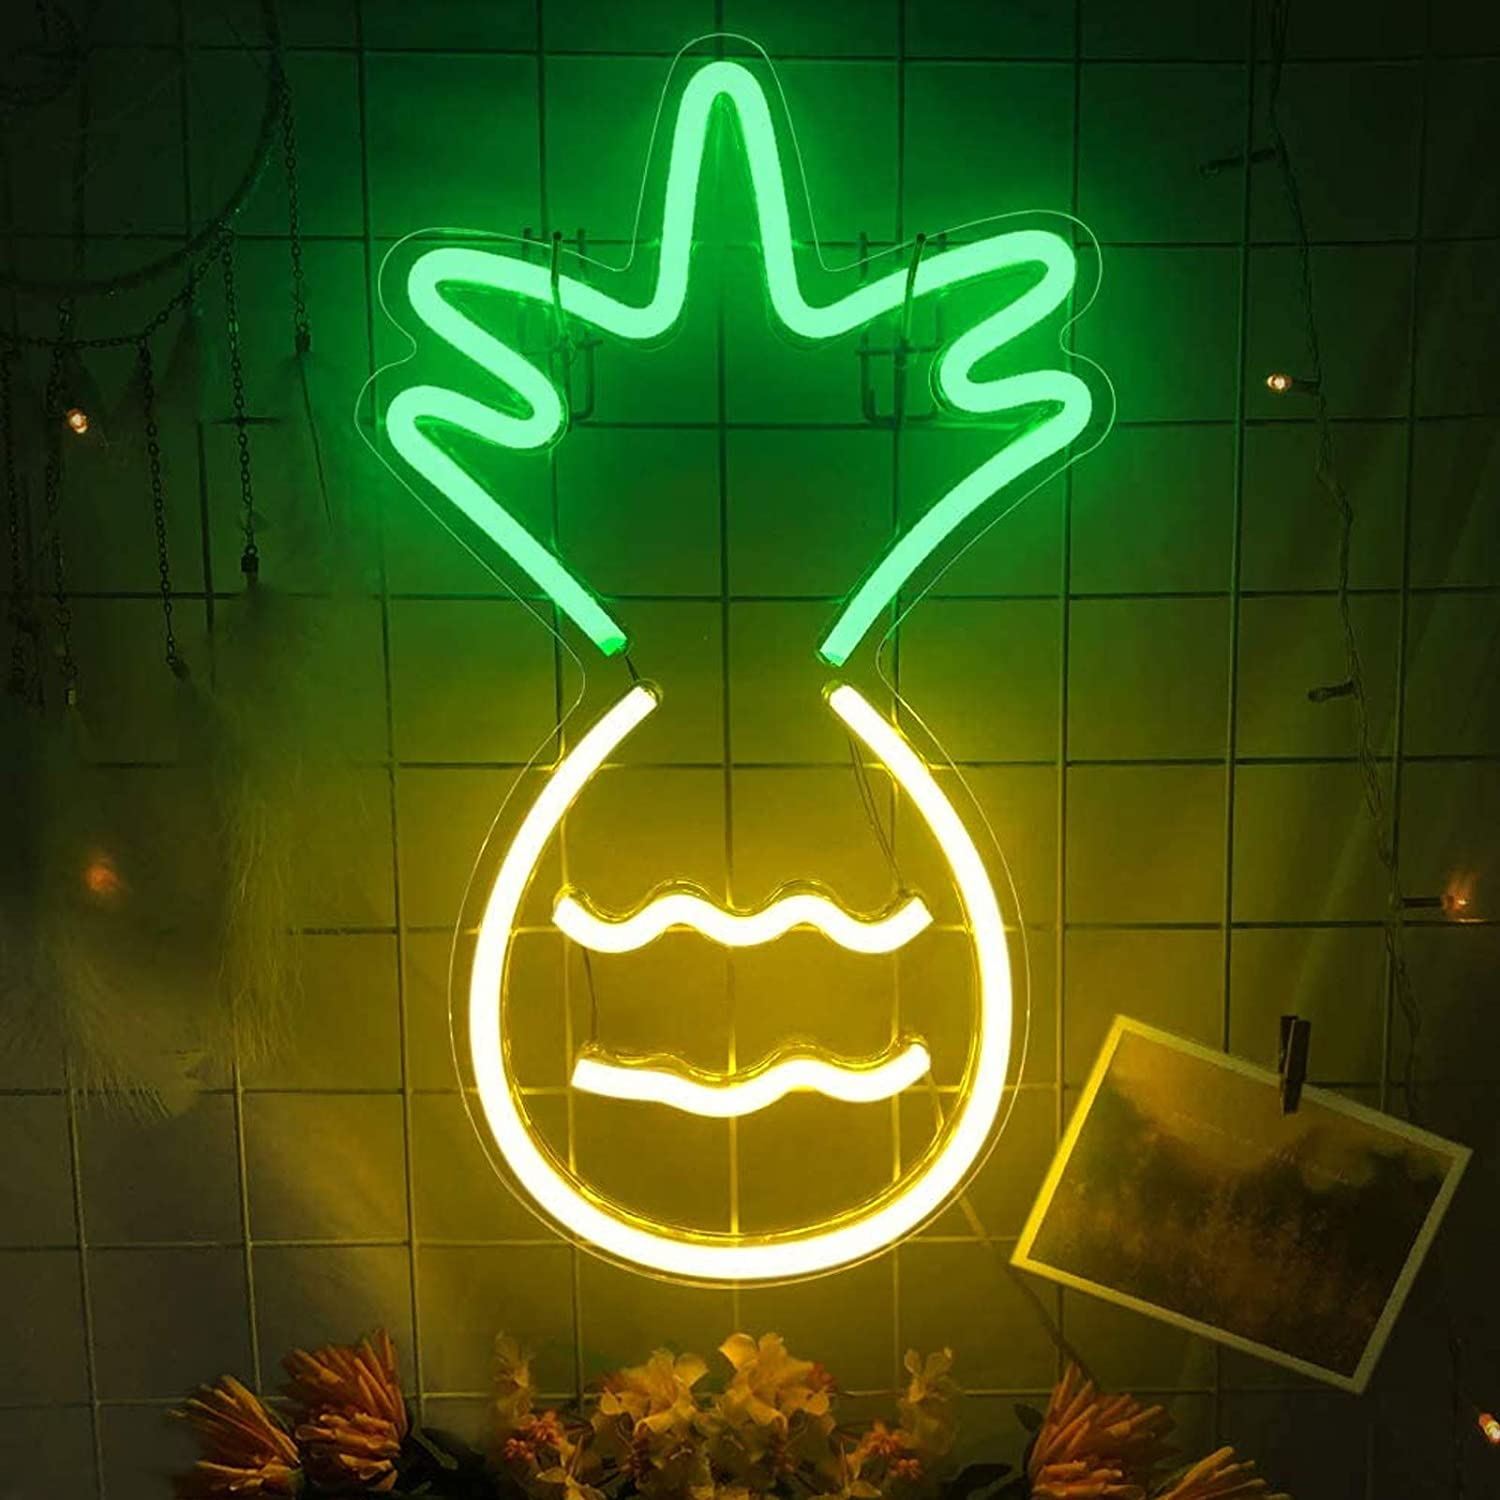 Pineapple Neon Signs- Neon Lights for Wall Decor USB Powered LED Signs Light Neon Signs for Bedroom LED Neon Signs Decorative LED Pineapple Light for Christmas Party Wedding Kids Girls boy Room